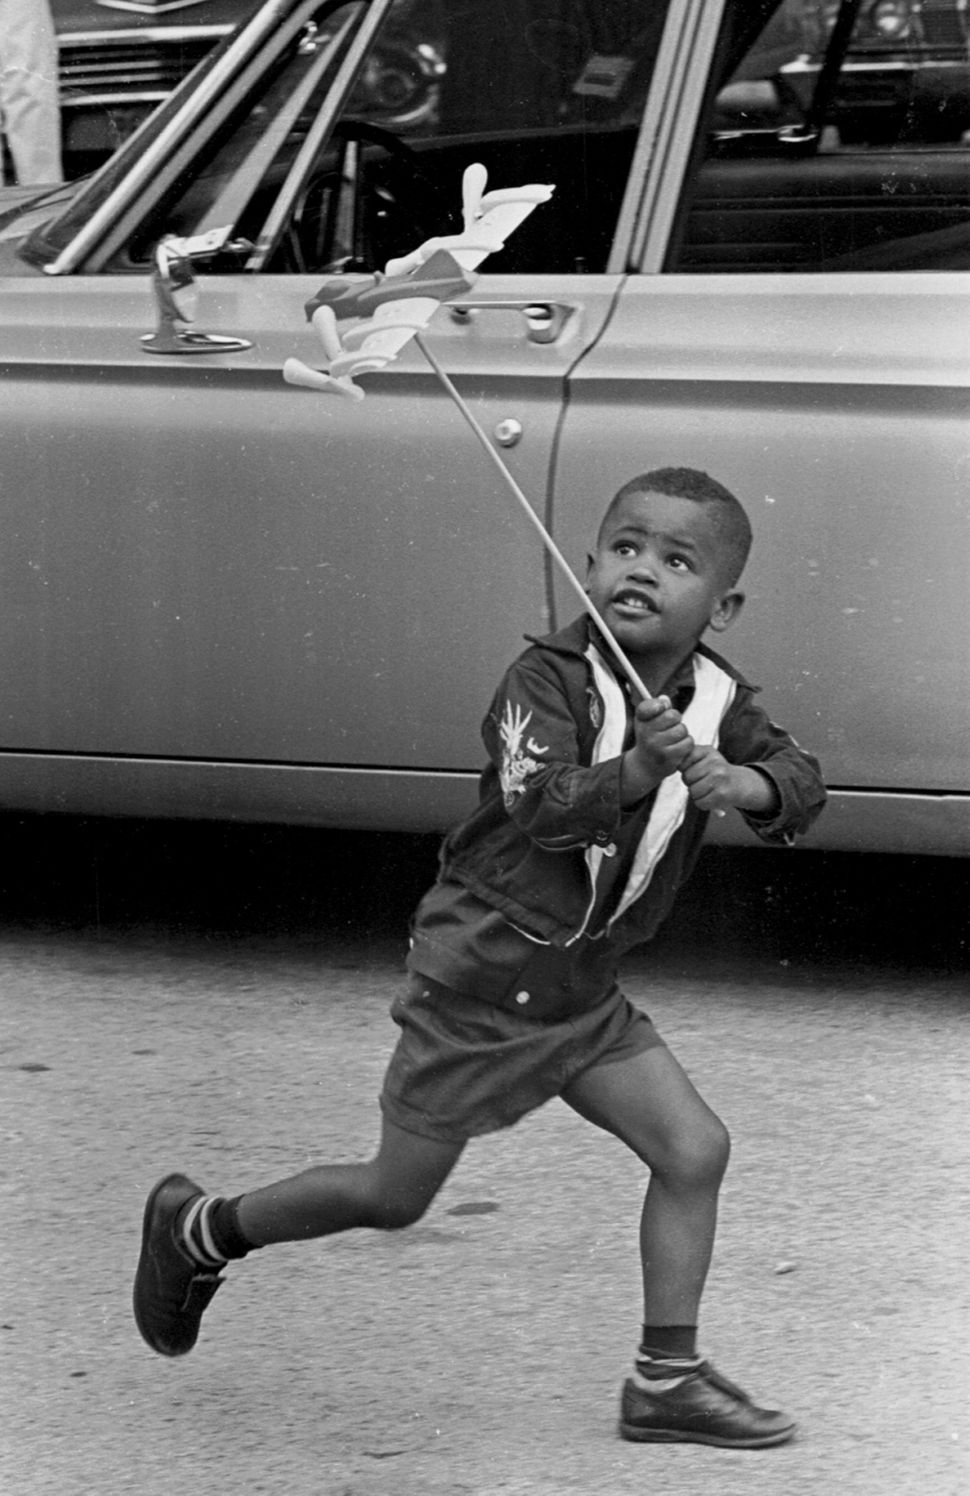 A young boy is intently focused upon his toy airplane, perched on a long stick, as he 'flies' it by running alongside a parke